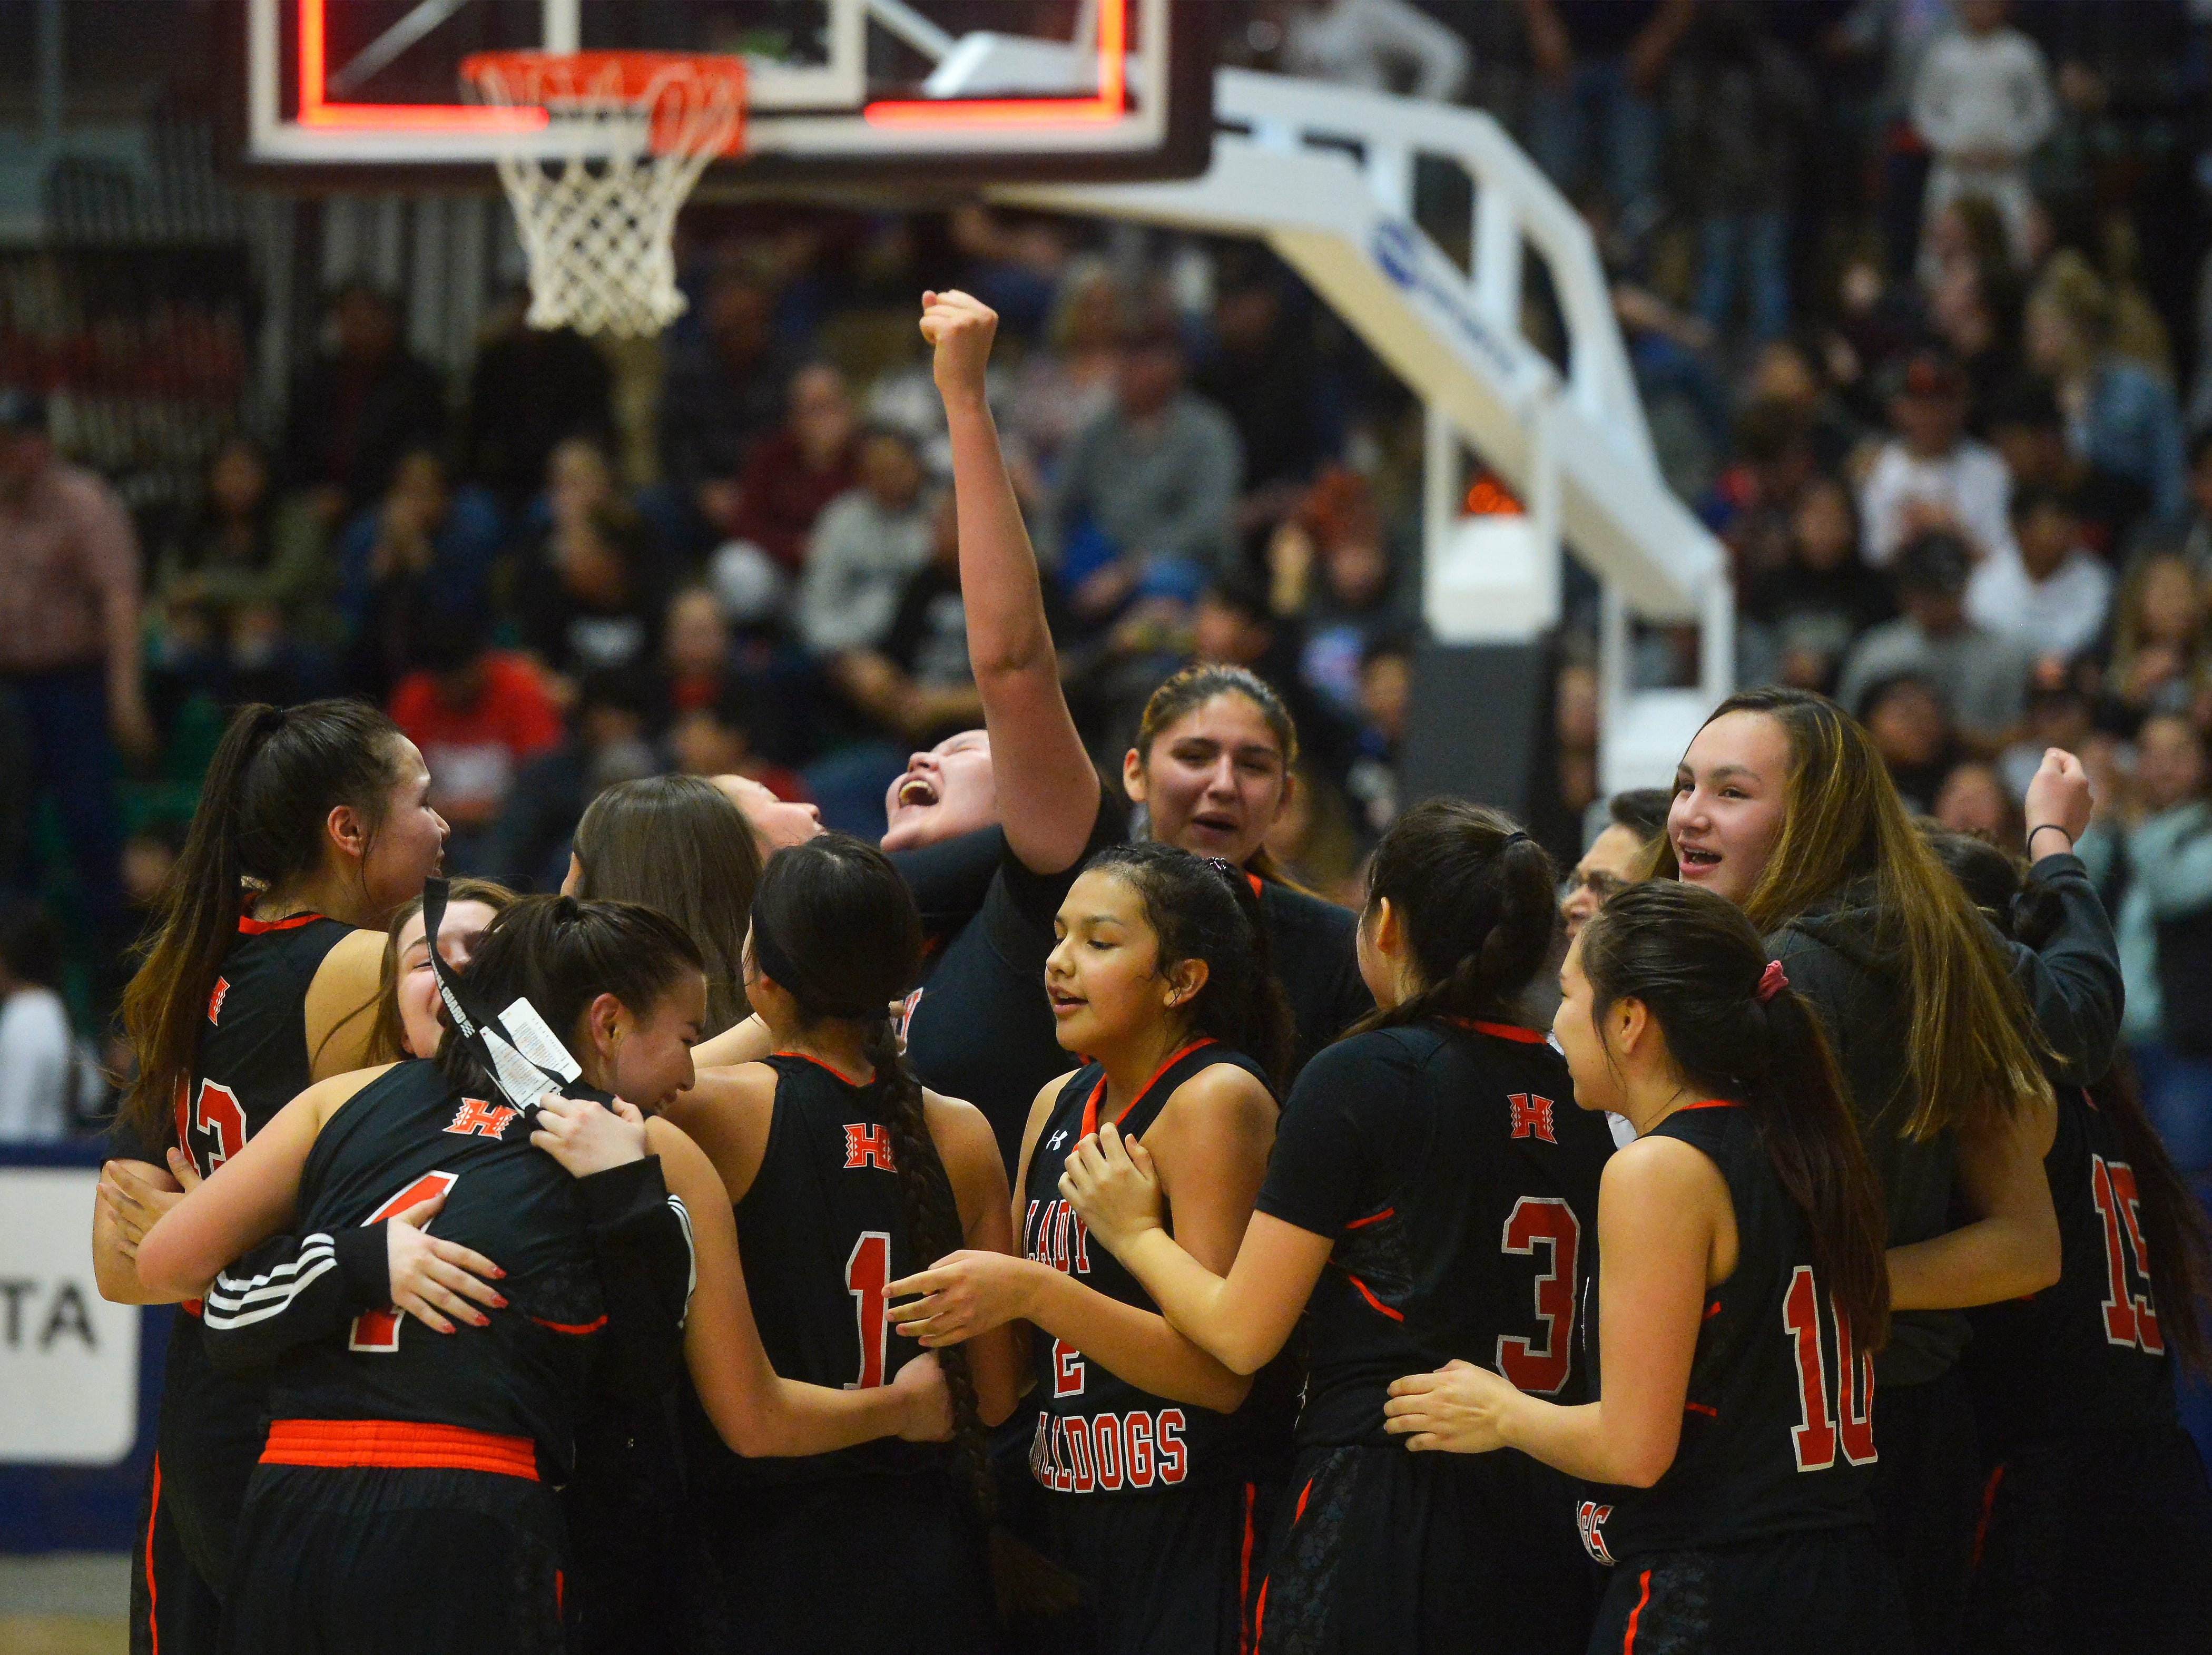 The Hardin girls celebrate their semifinal victory over Billings Central during the State Class A Basketball Tournament in the Four Seasons Arena, Friday.